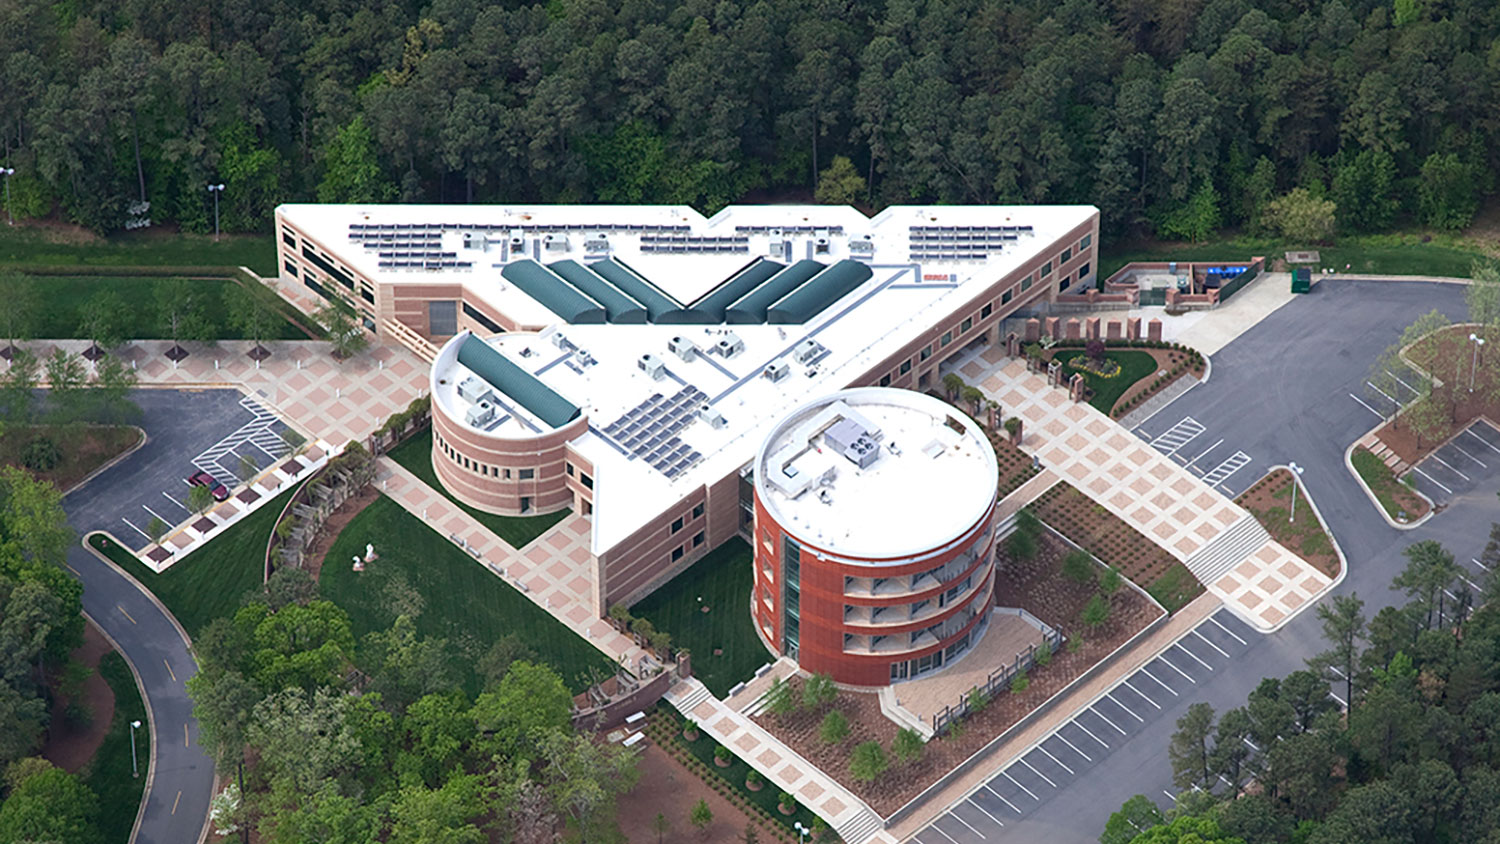 Aerial view of the biotech center